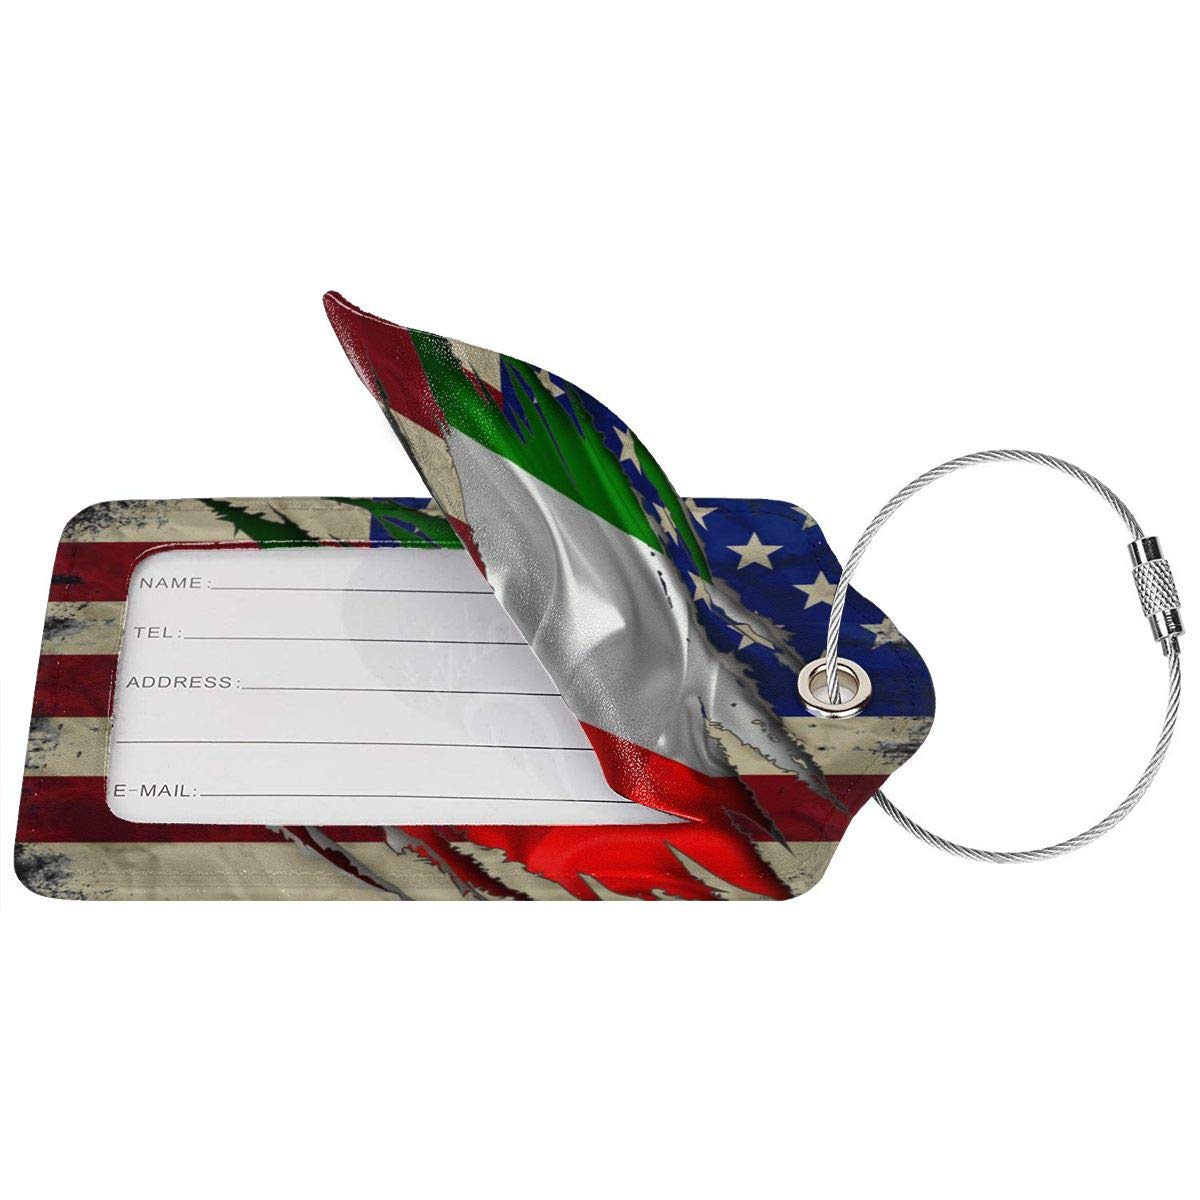 GoldK Italian American Flag Leather Luggage Tags Baggage Bag Instrument Tag Travel Labels Accessories with Privacy Cover